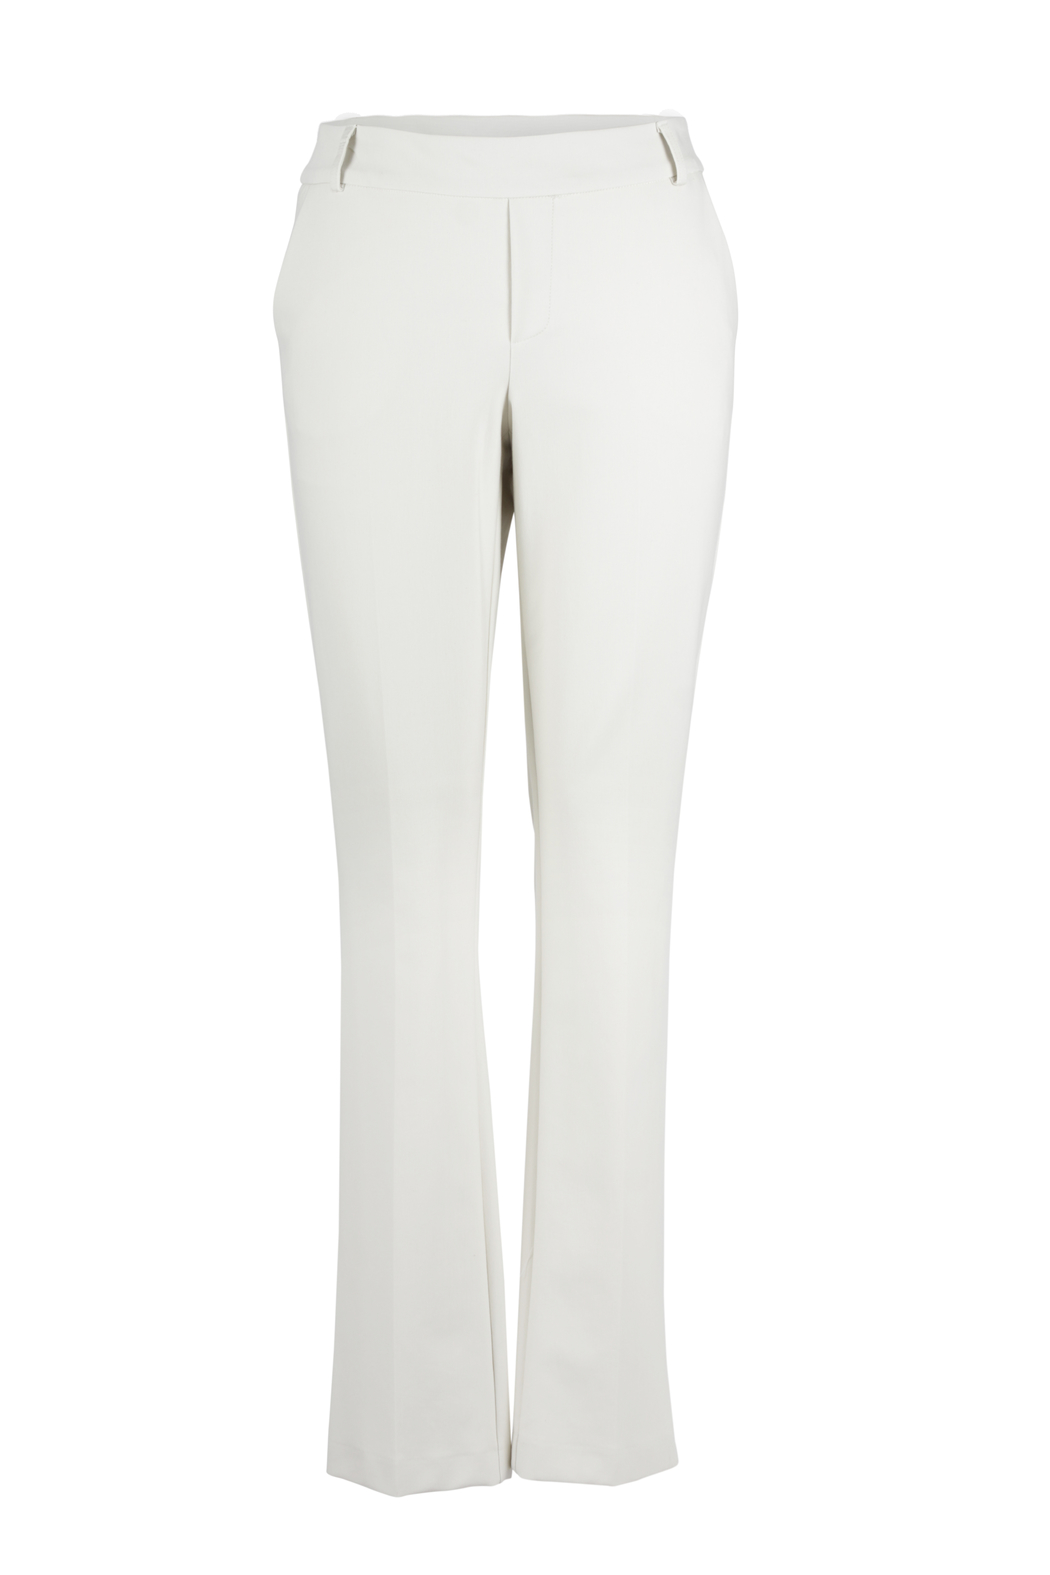 Up! Cavalli Twill Trouser - Main Image